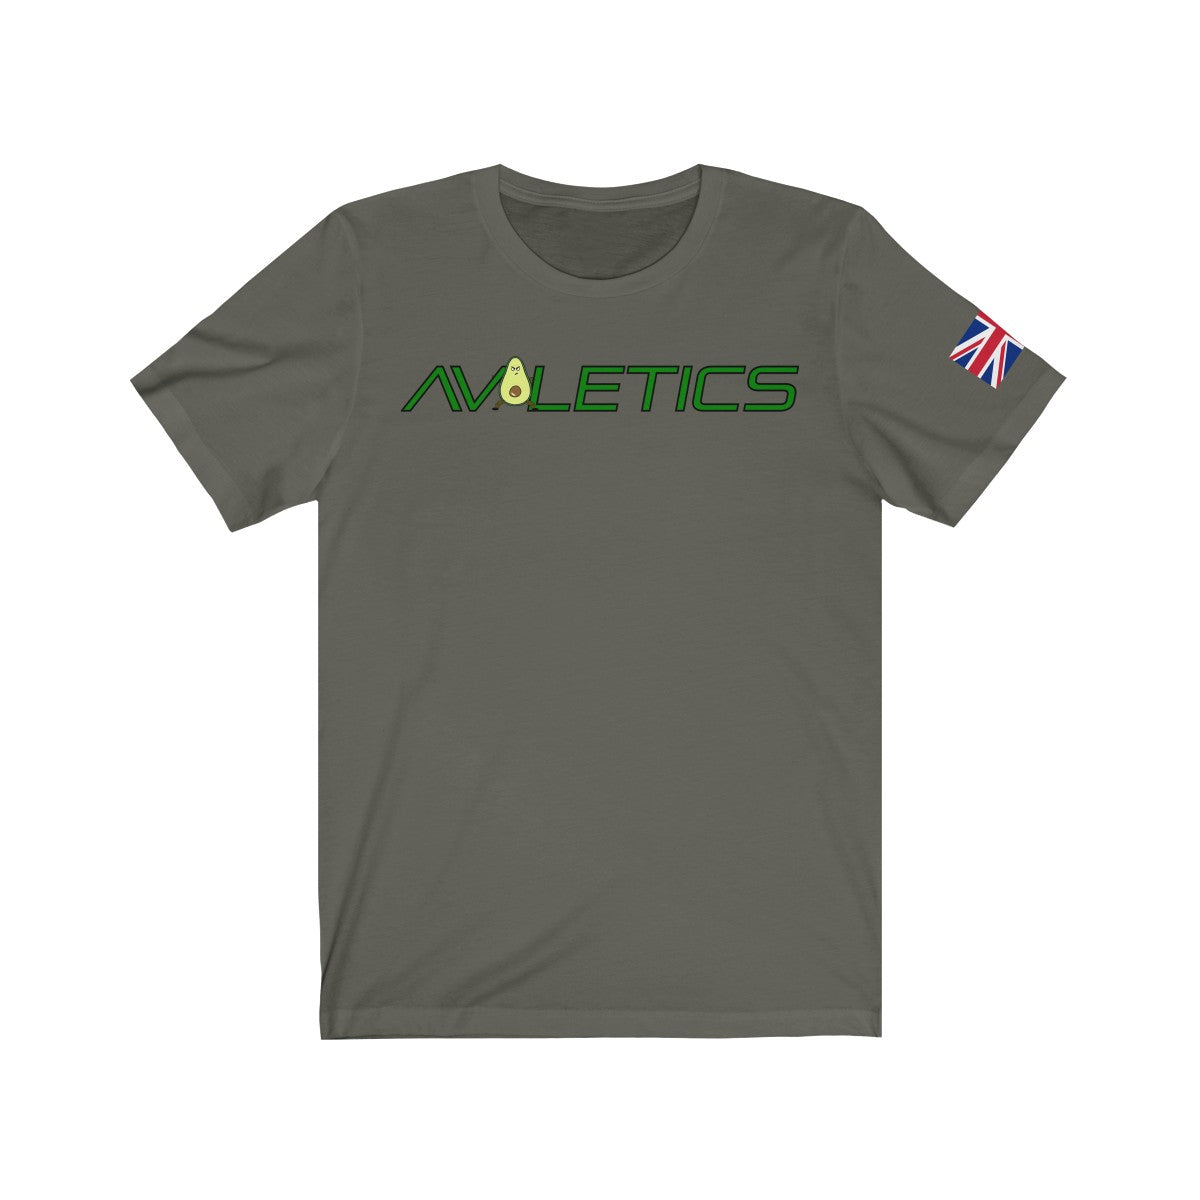 Avoletics Union Jack Unisex Jersey Short Sleeve Tee